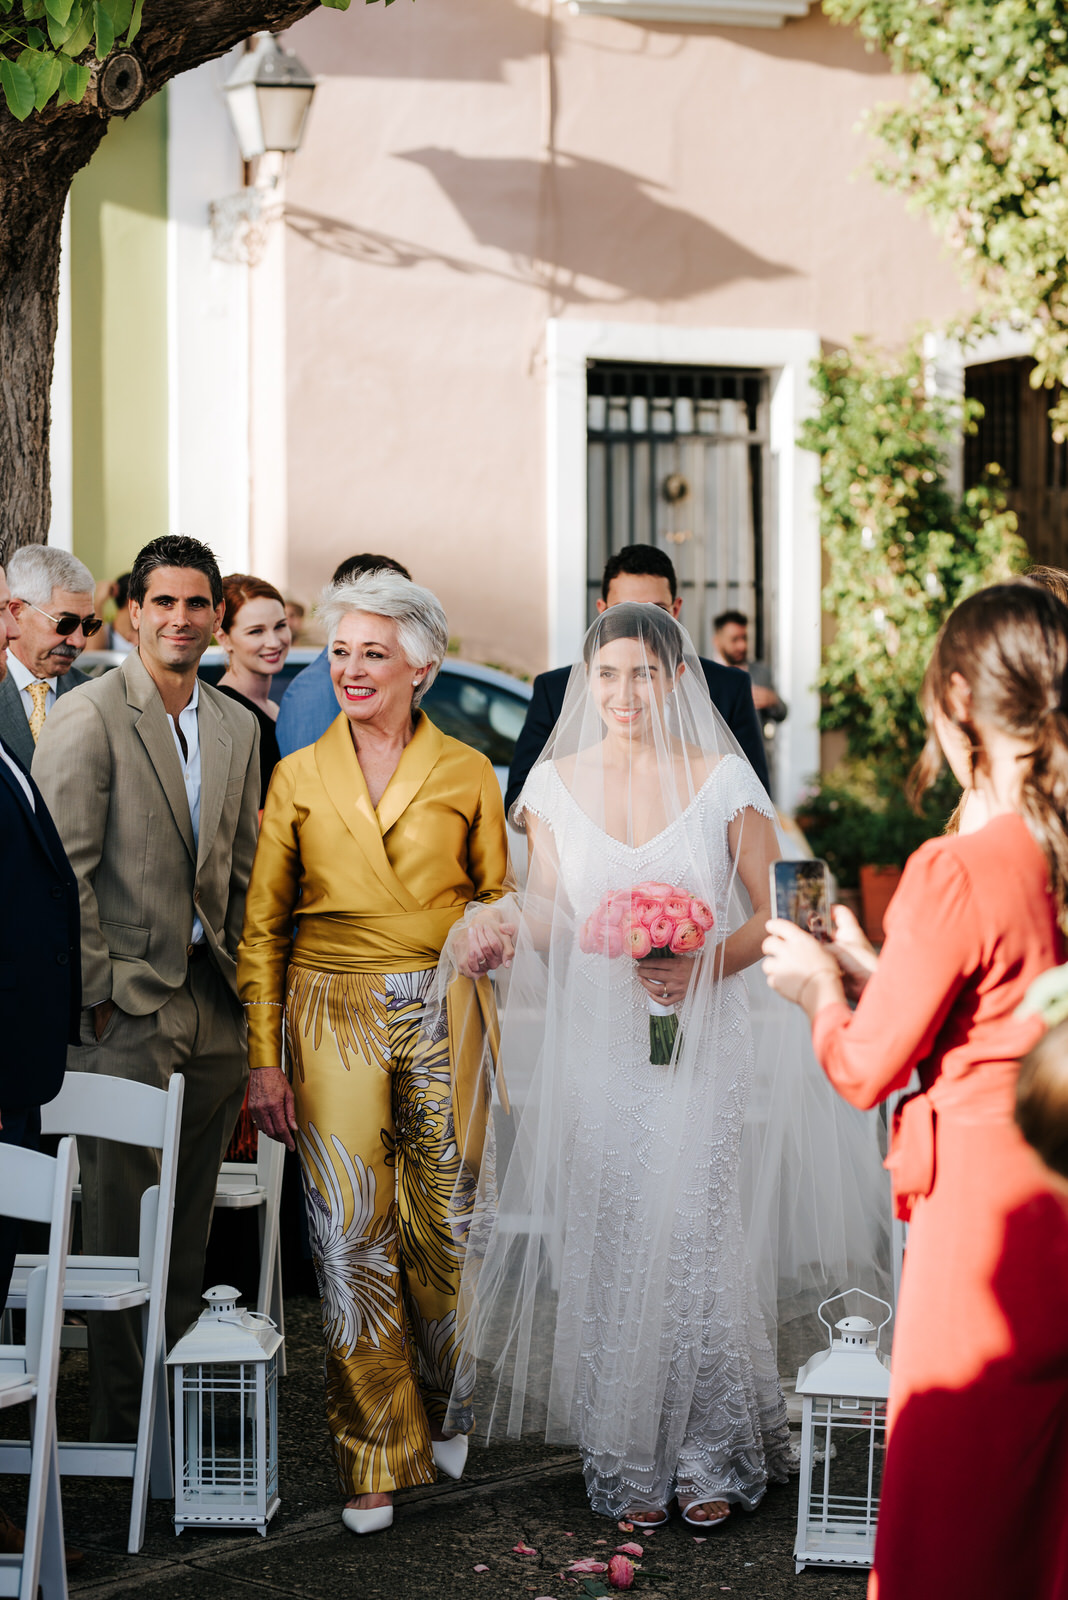 Bride and her mother walk down the wedding aisle as they smile and exchange glances with guests during this wedding in Old San Juan Puerto Rico